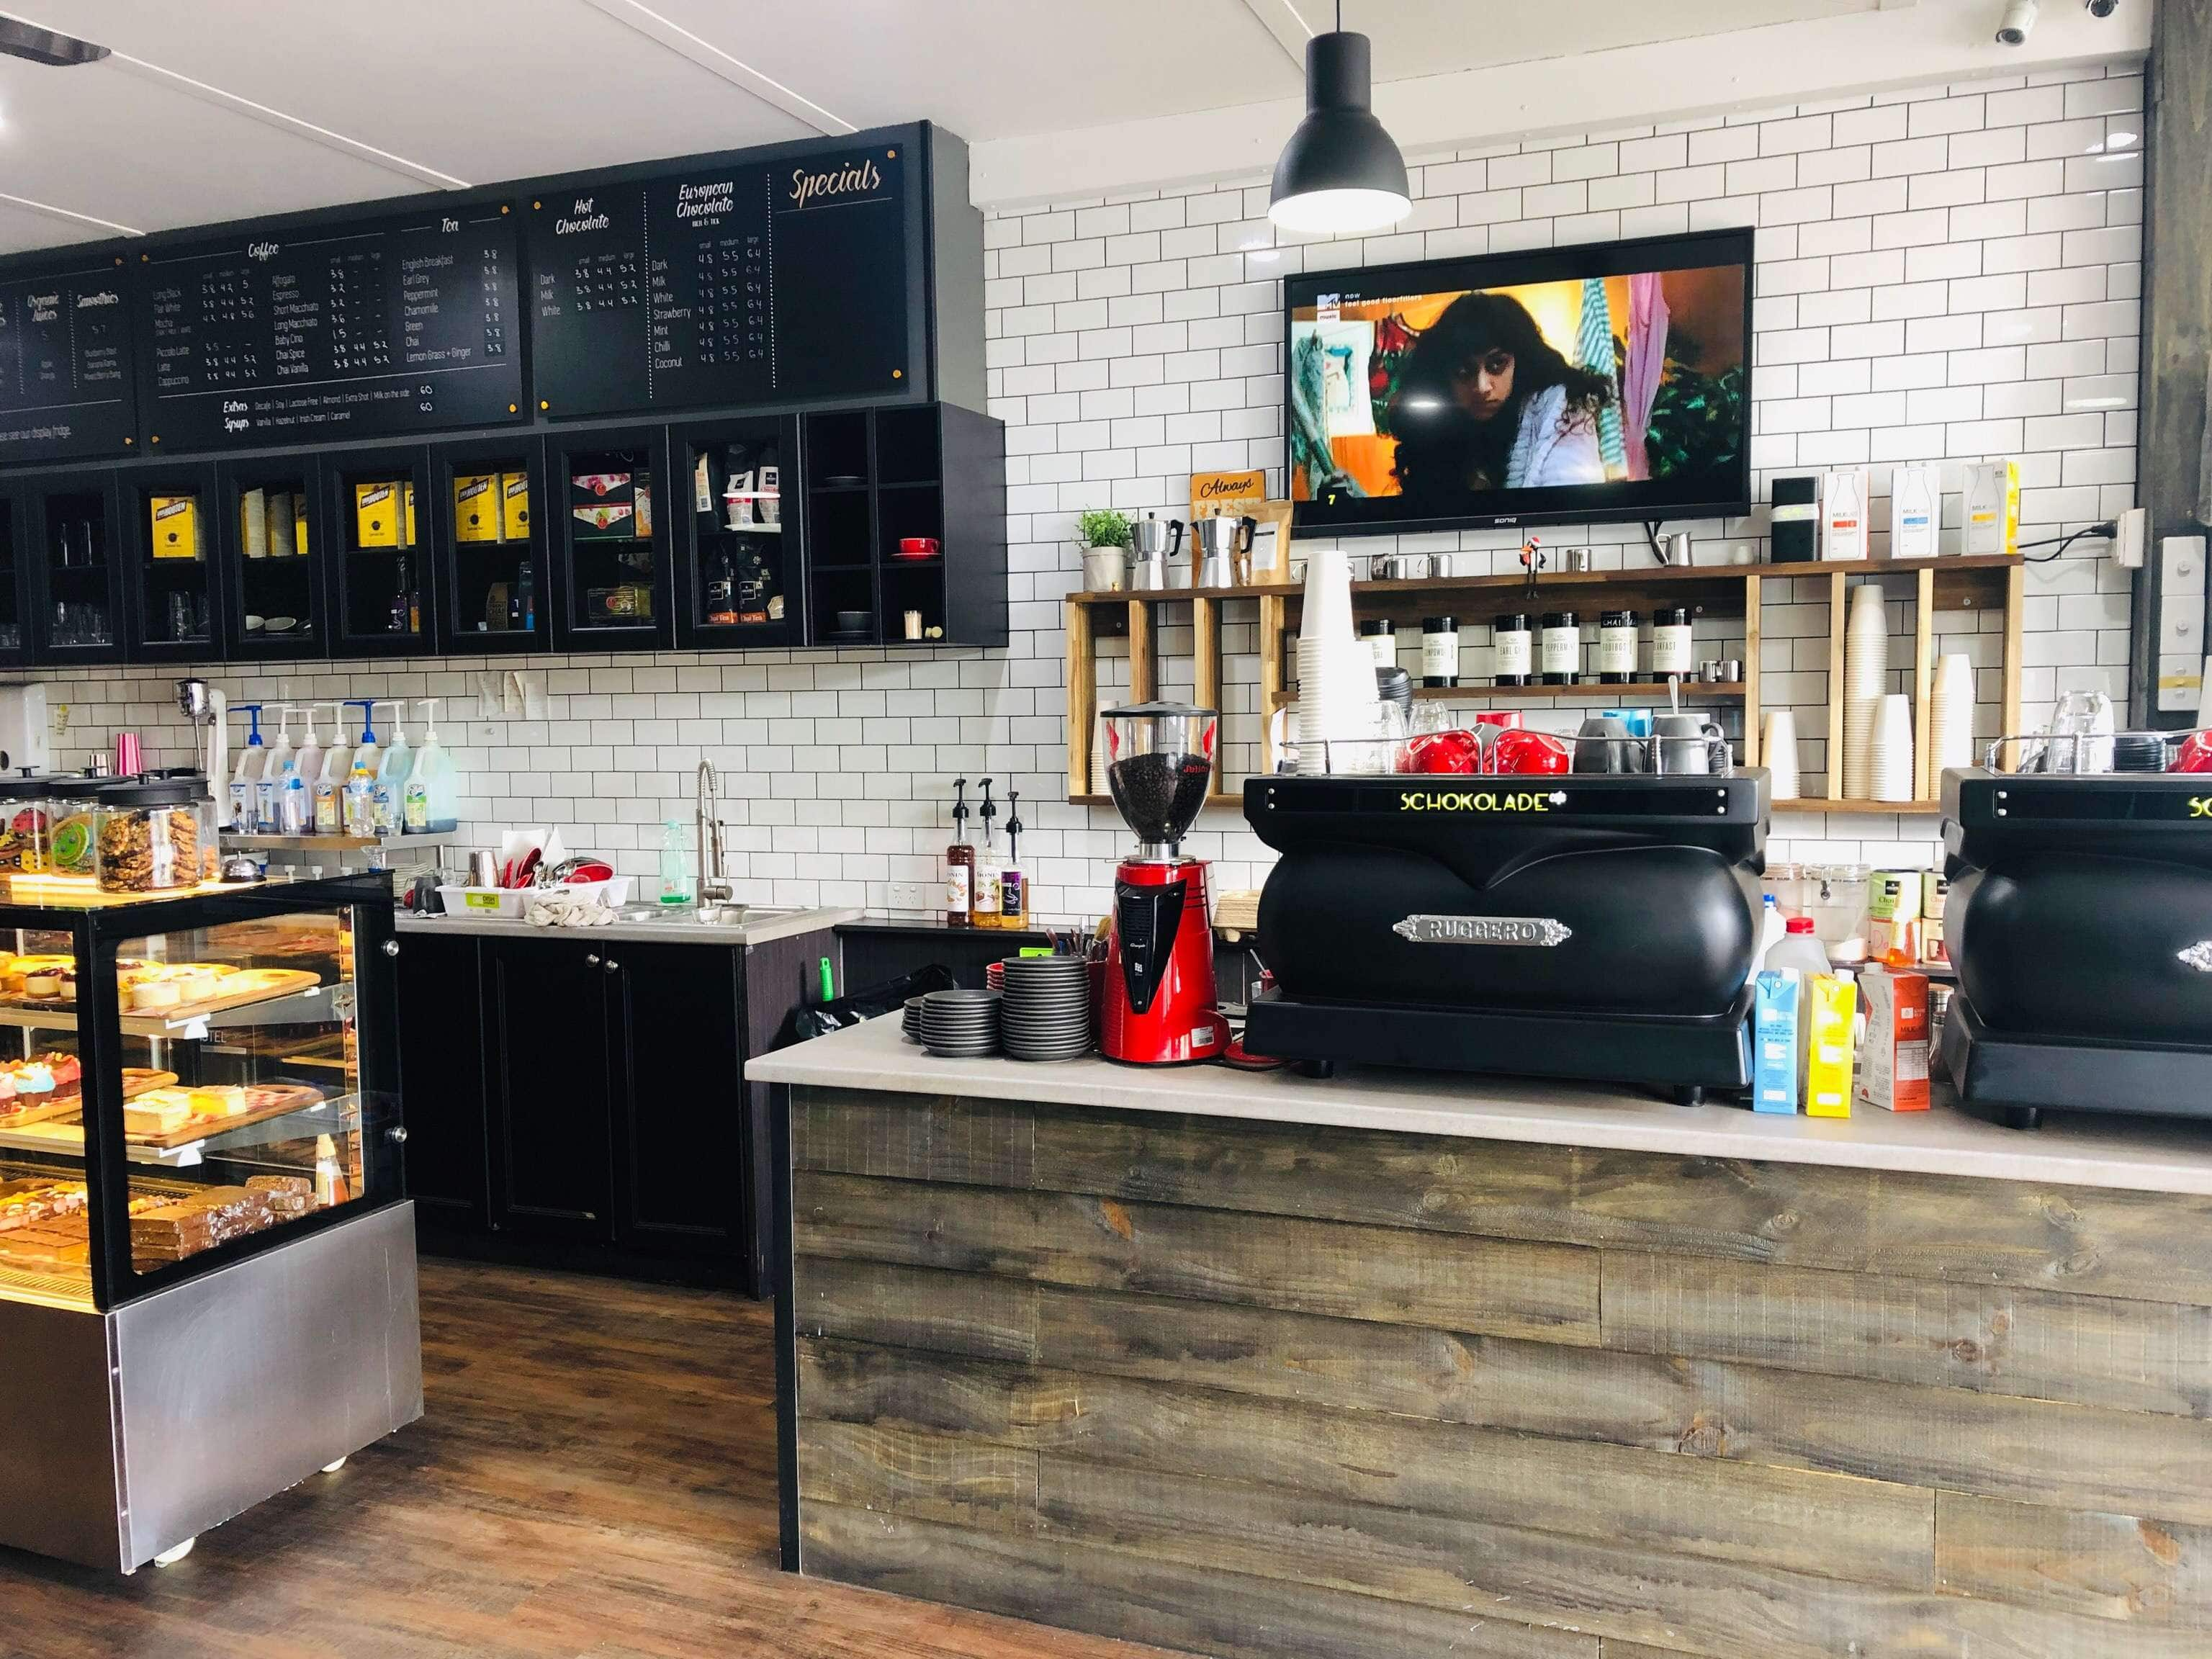 Schokolade Boutique Chocolate Cafe & Gifts | 209 Stud Road, Wantirna South, Victoria 3152 | +61 3 9801 3371